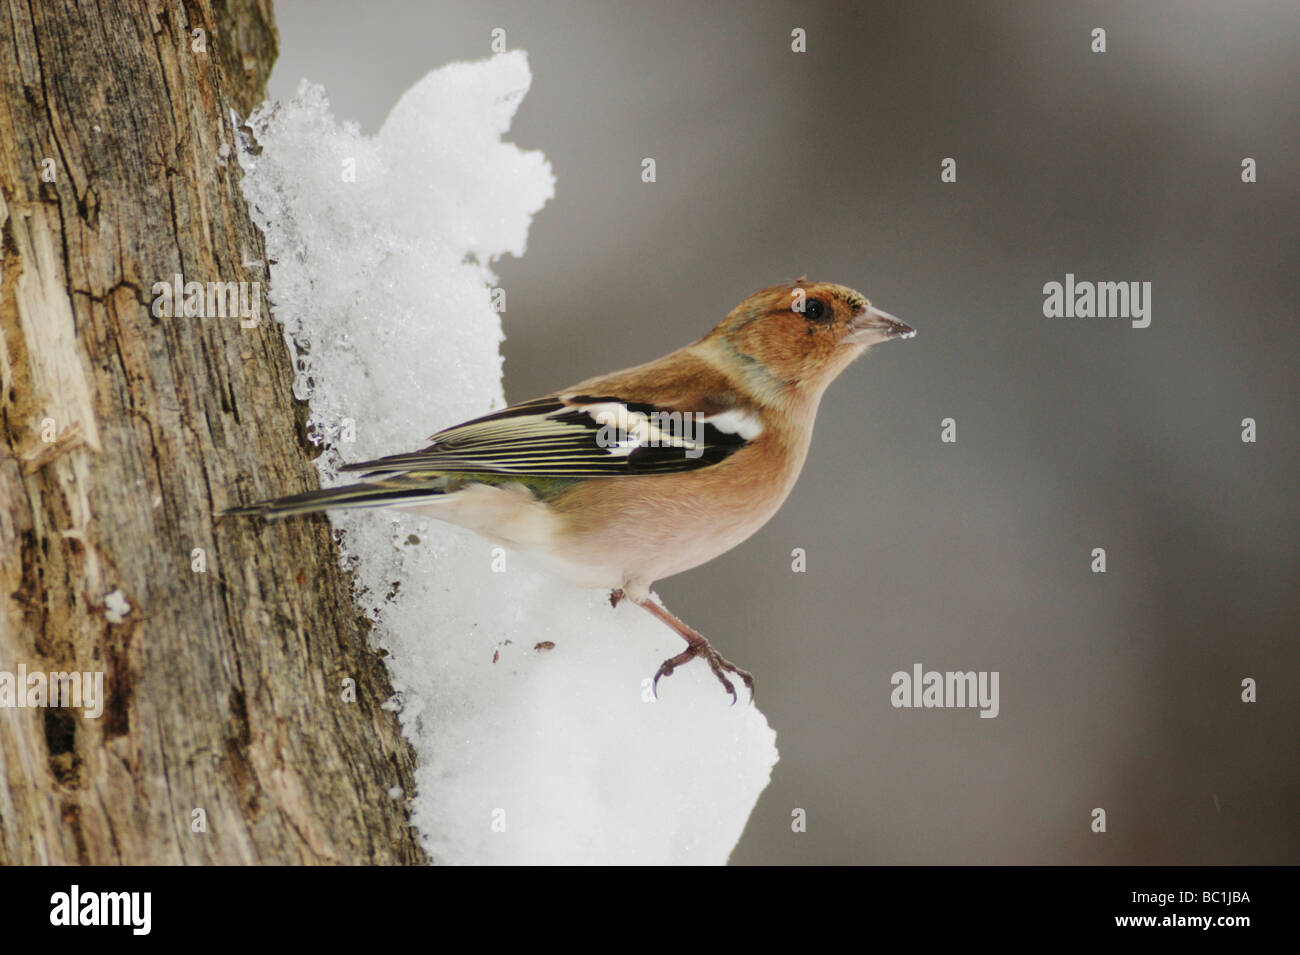 Common Chaffinch Fringilla coelebs adult perched on snow Zug Switzerland December 2007 - Stock Image